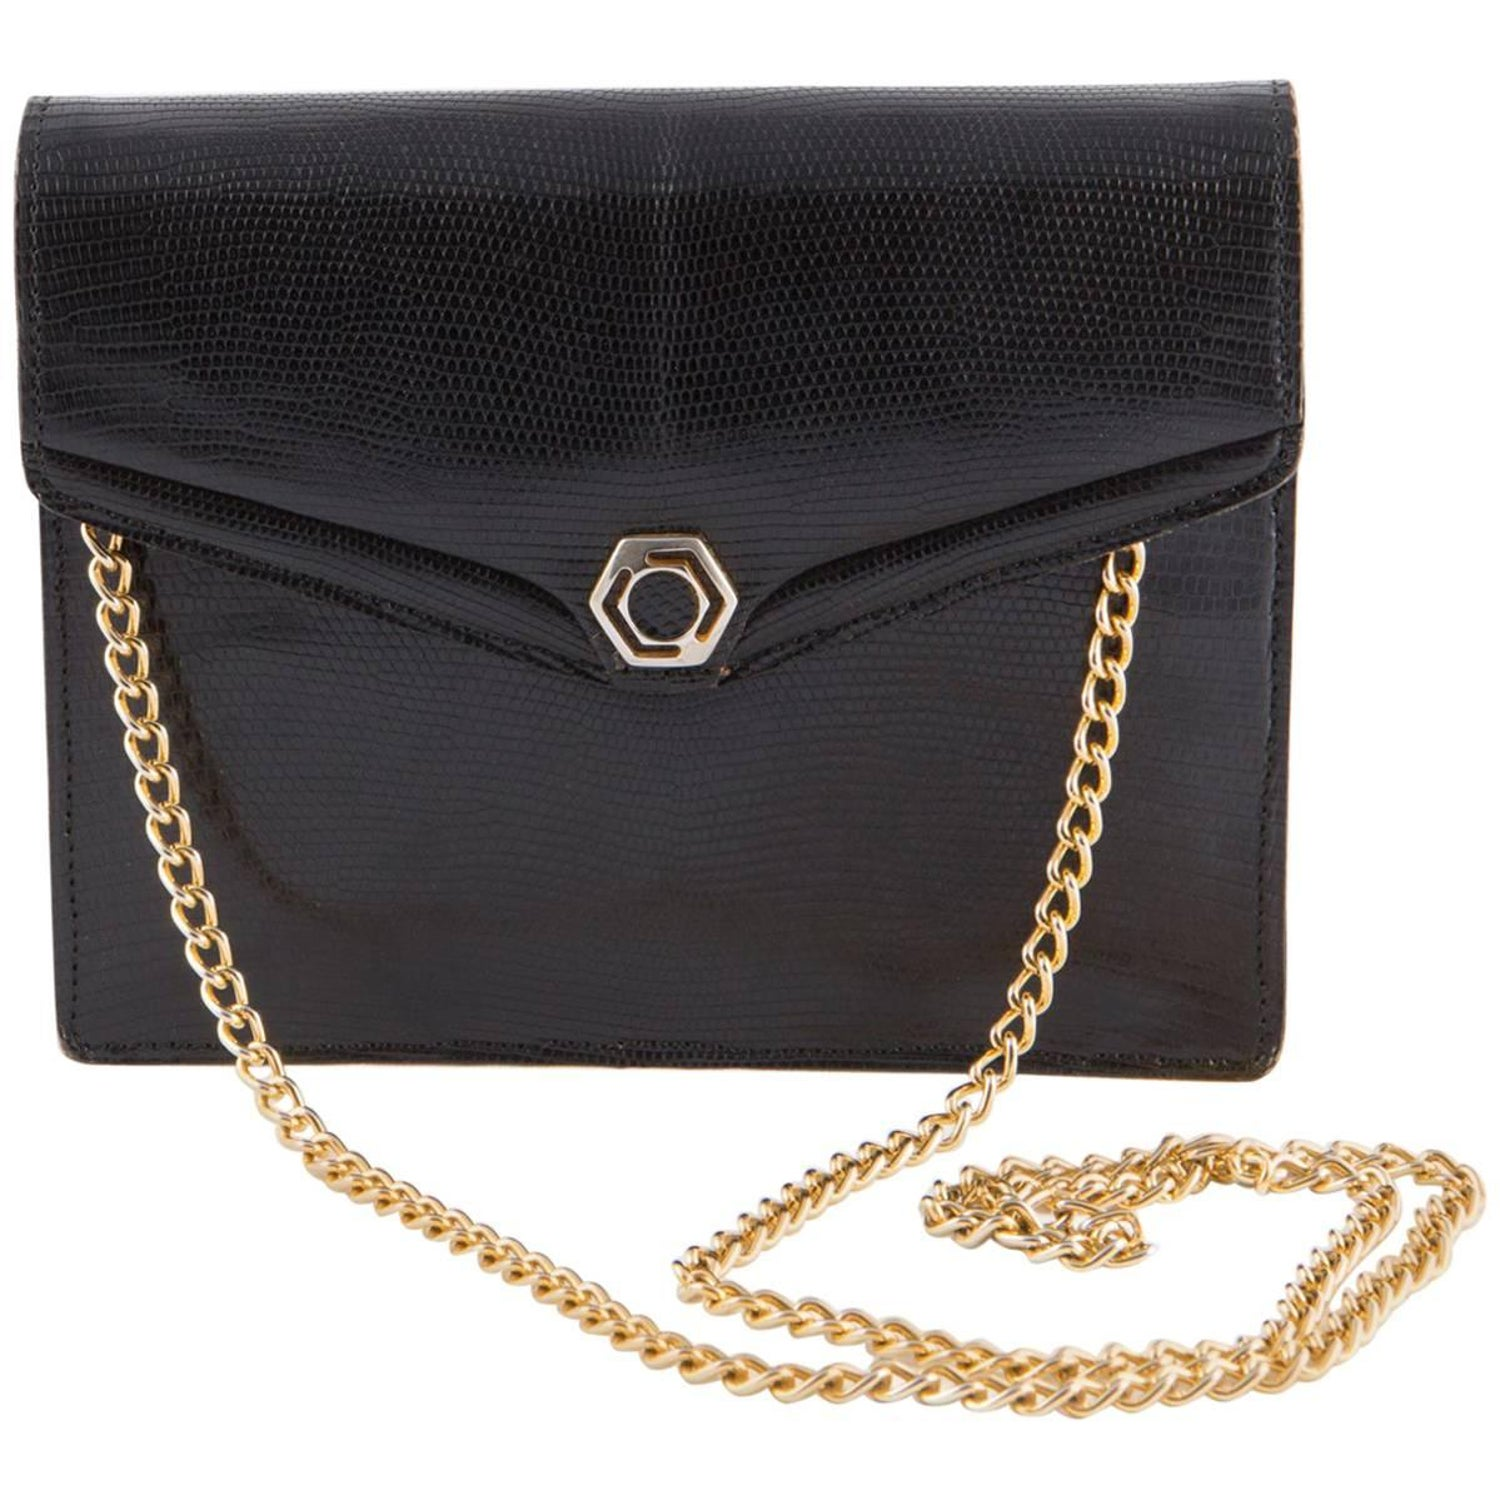 cbbf756d1229 1960s Black Evening Bag For Sale at 1stdibs